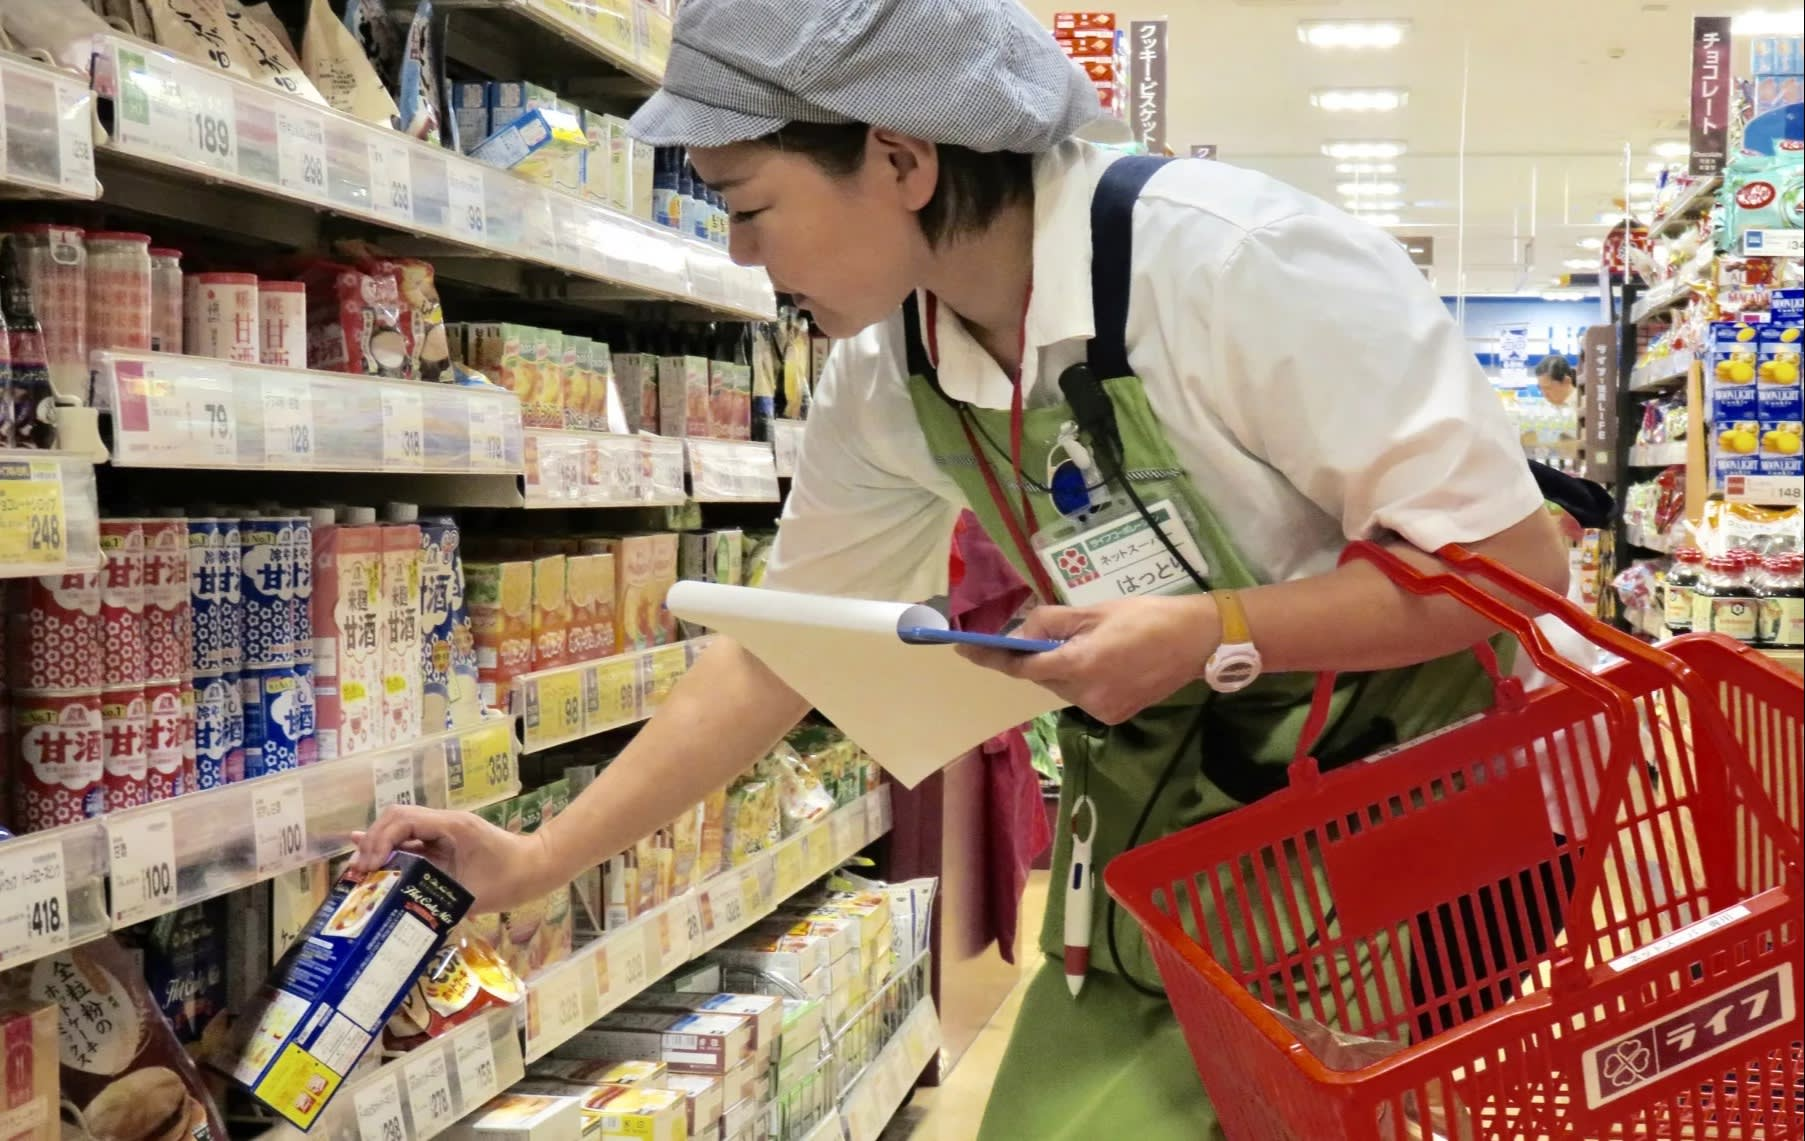 Under the partnership with Amazon Japan, workers at Life supermarkets will gather the items ordered by customers online for delivery. (Photo by Kento Hirashima)